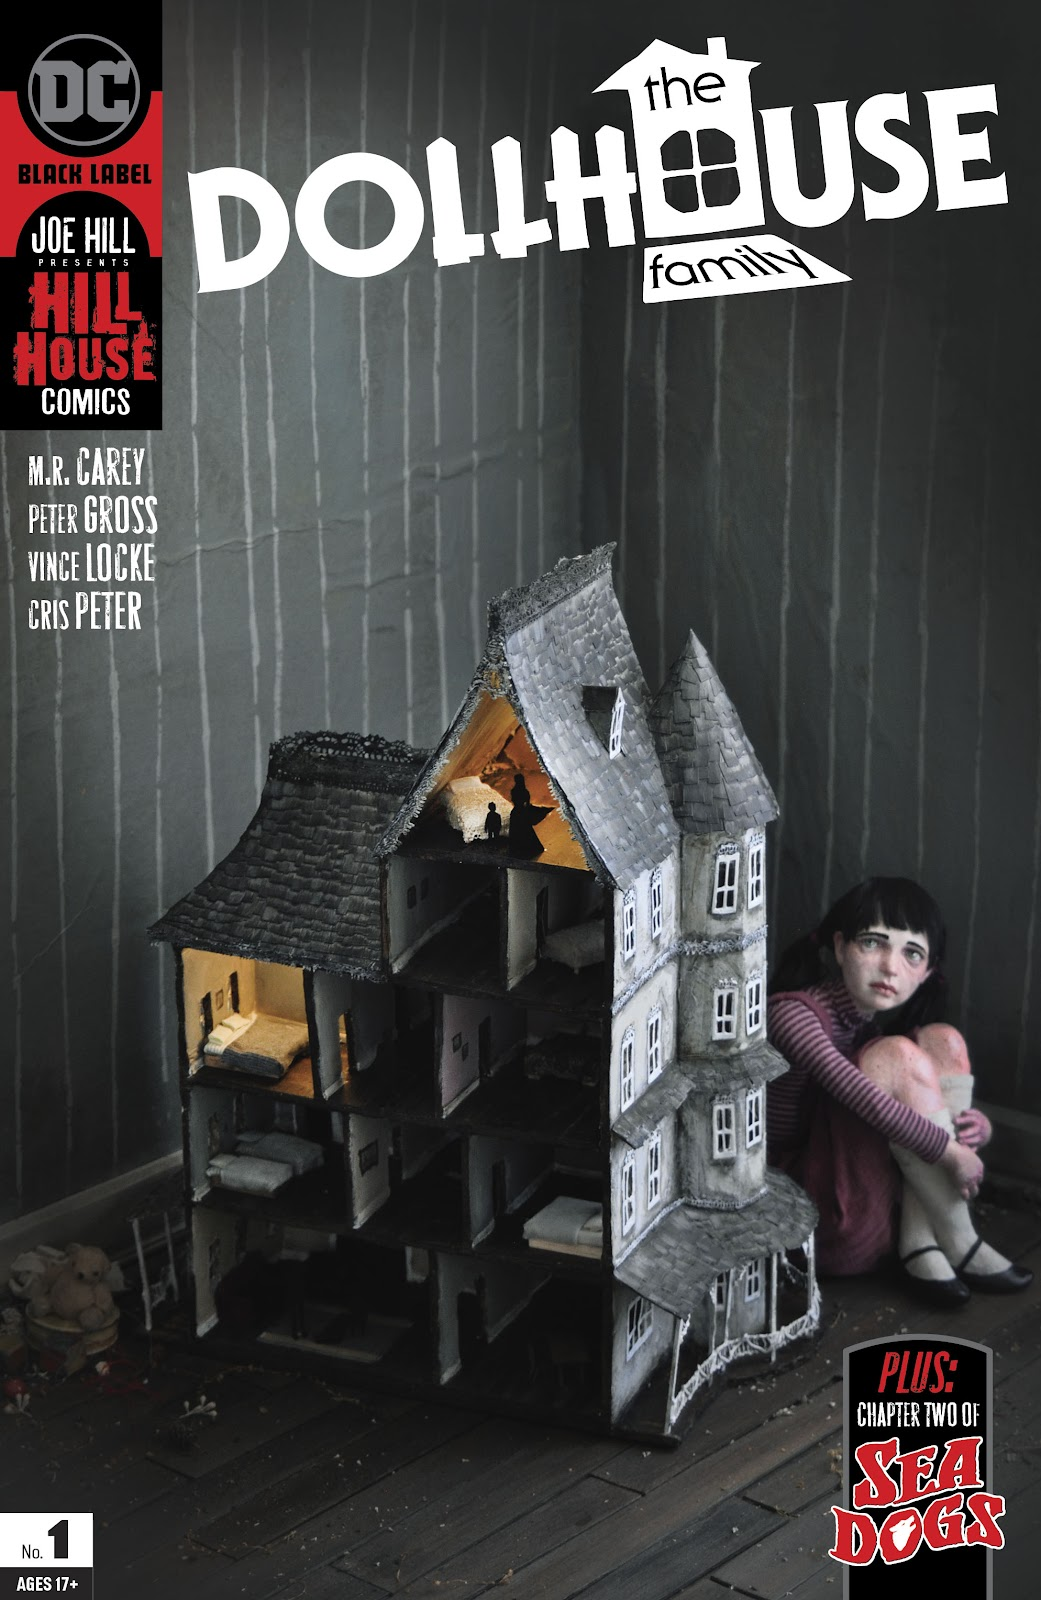 Read online The Dollhouse Family comic -  Issue #1 - 1